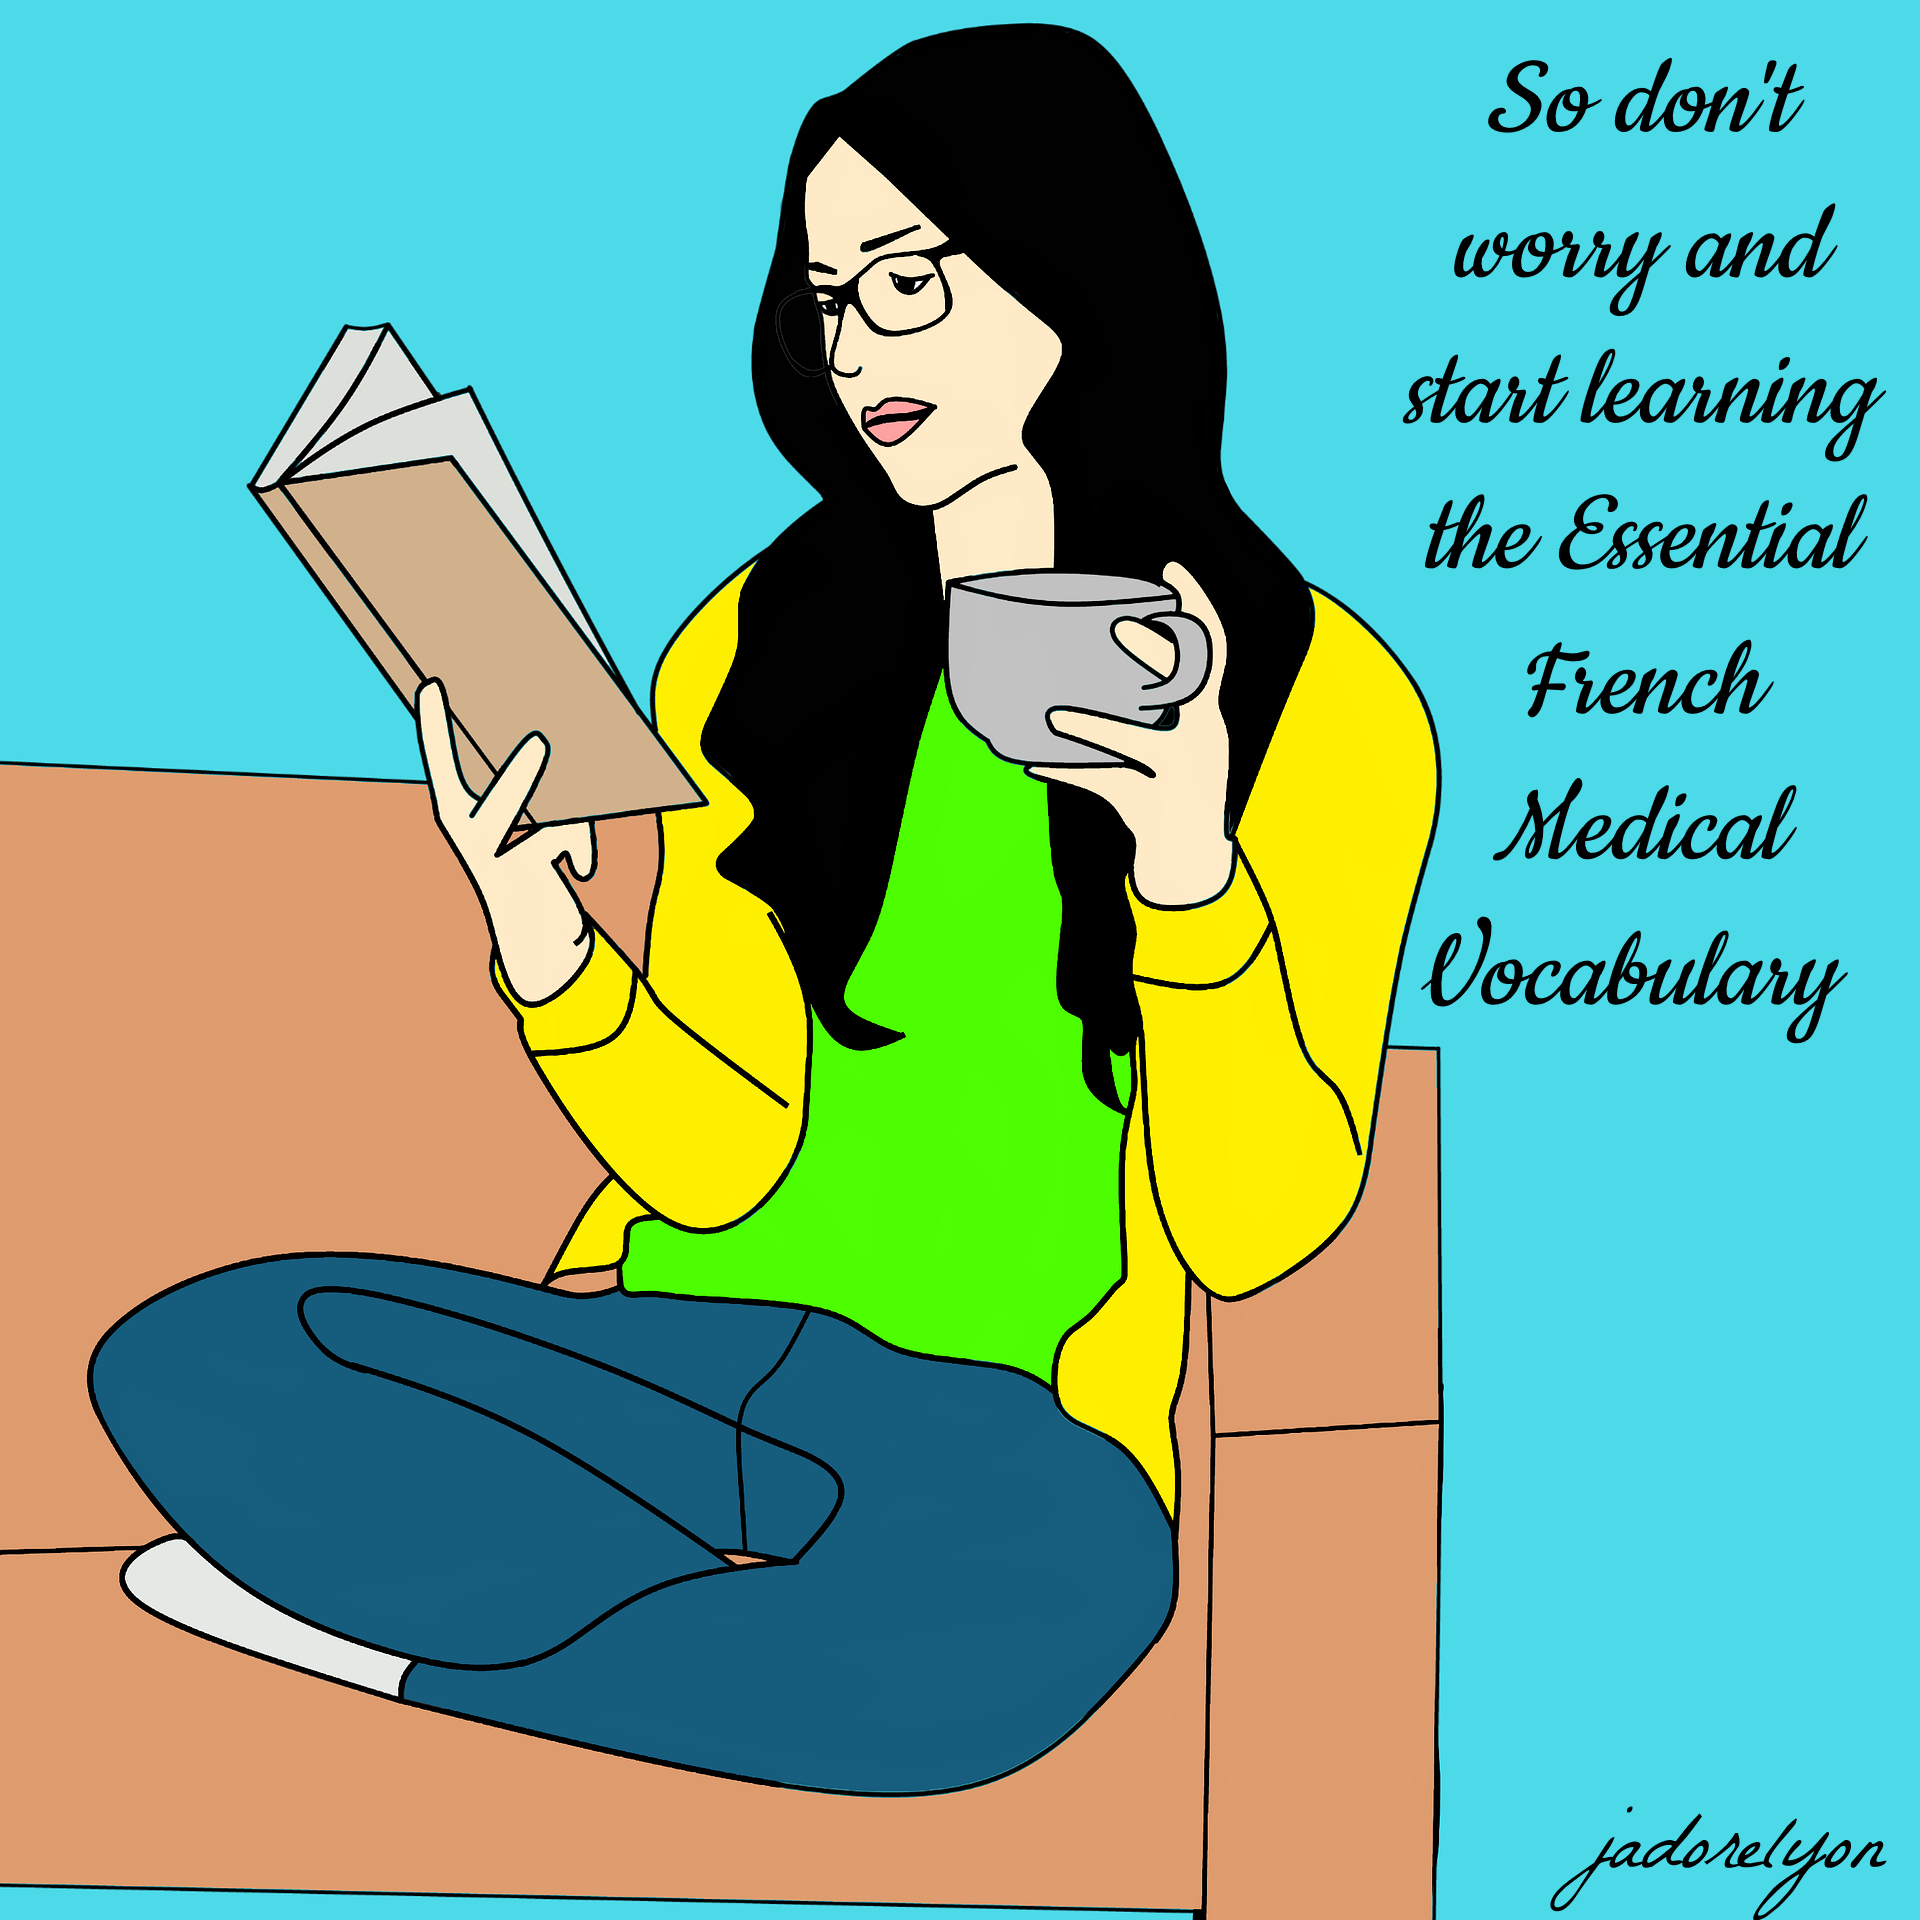 So don't worry and start learning the Essential French Medical Vocabulary